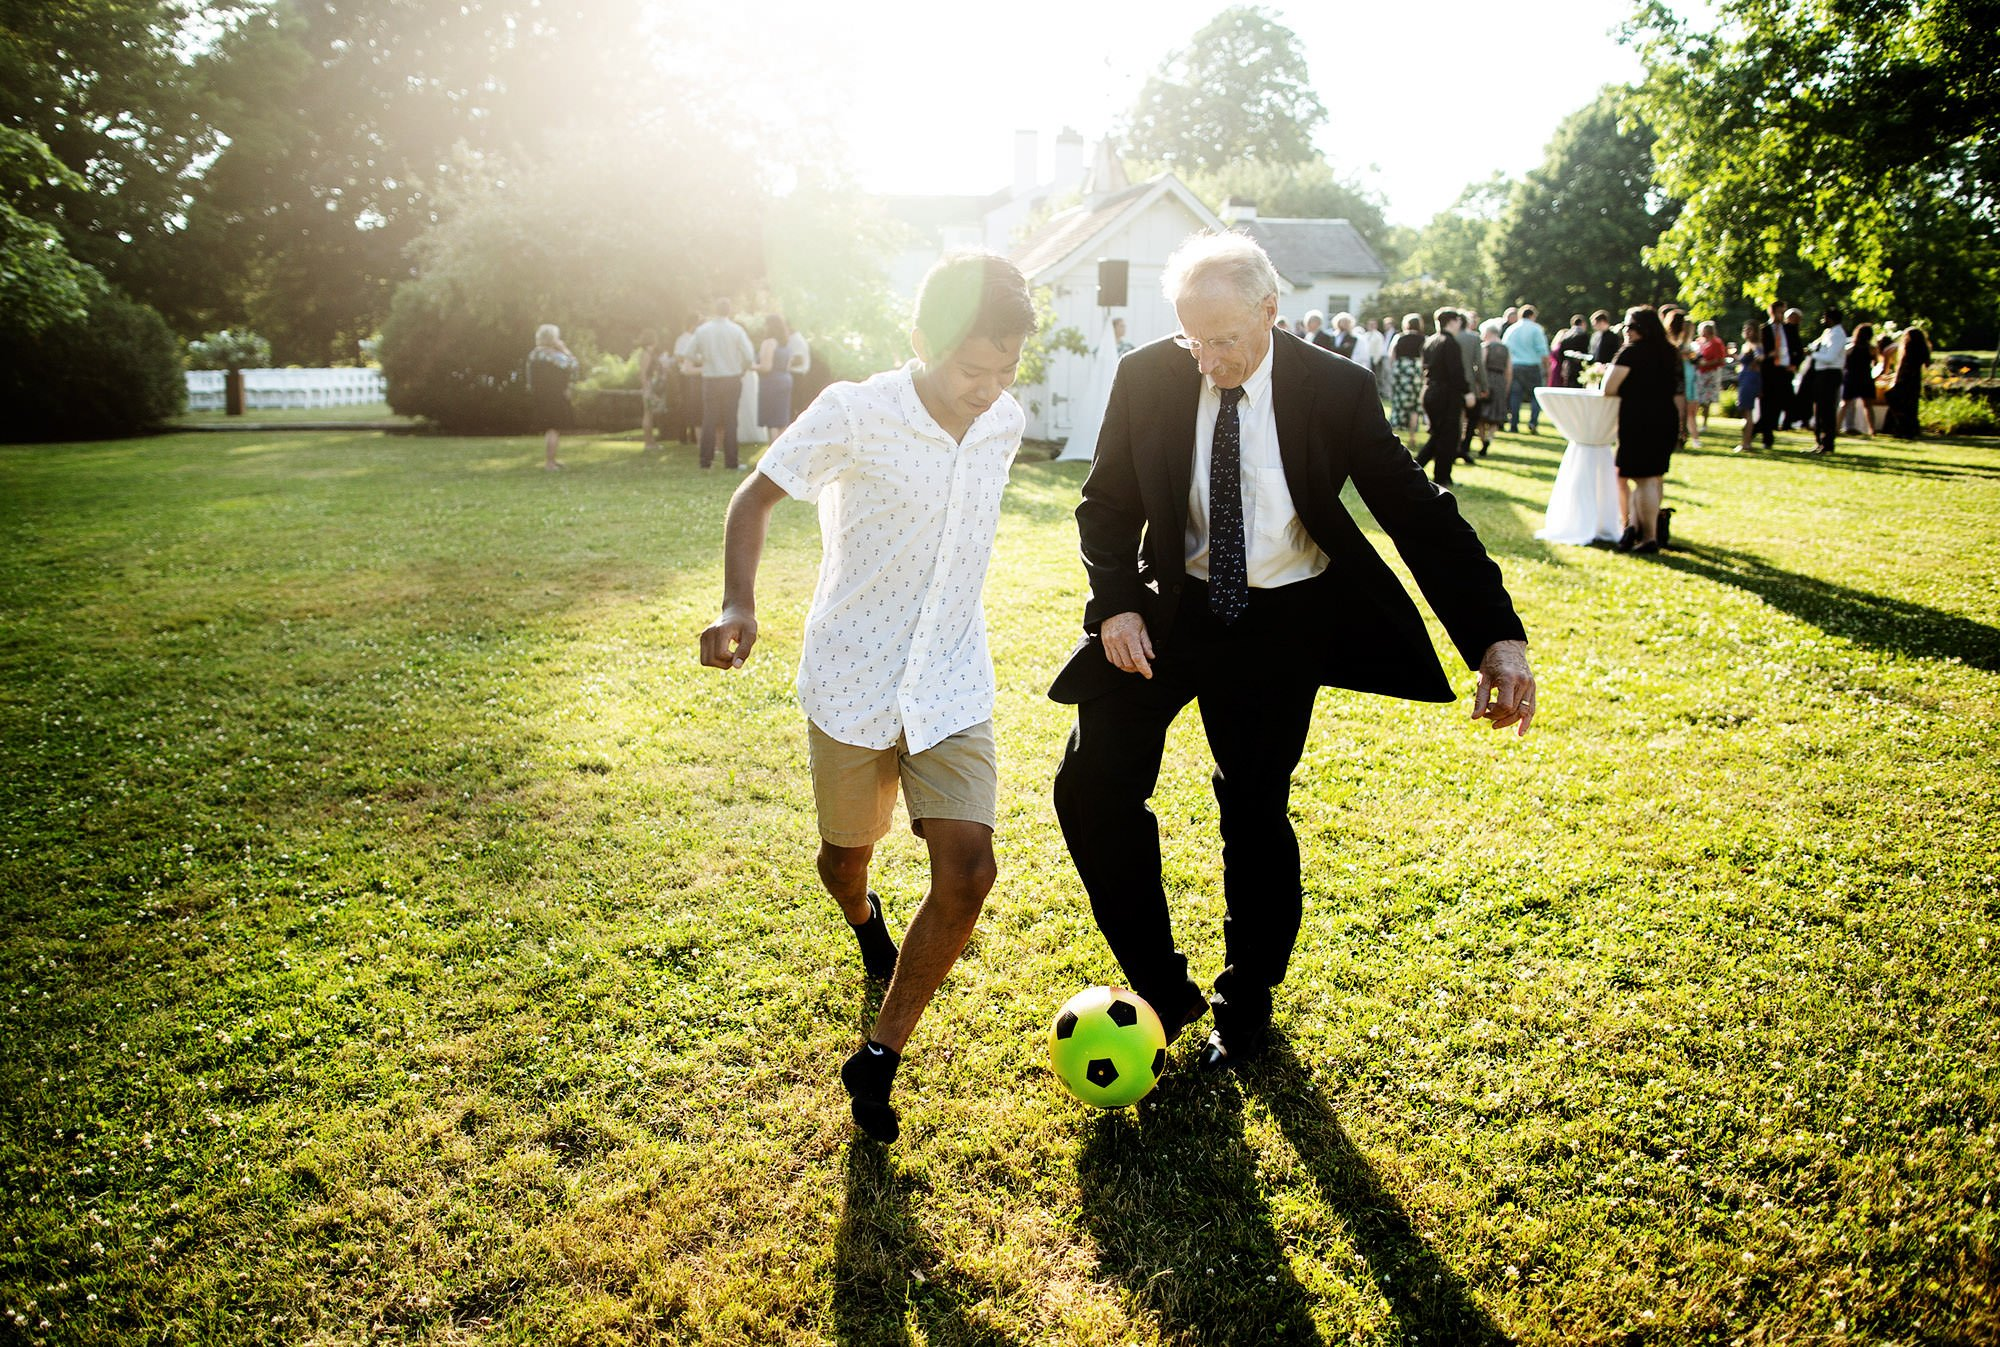 Guests play soccer during cocktail hour at Mount Hope Farm.